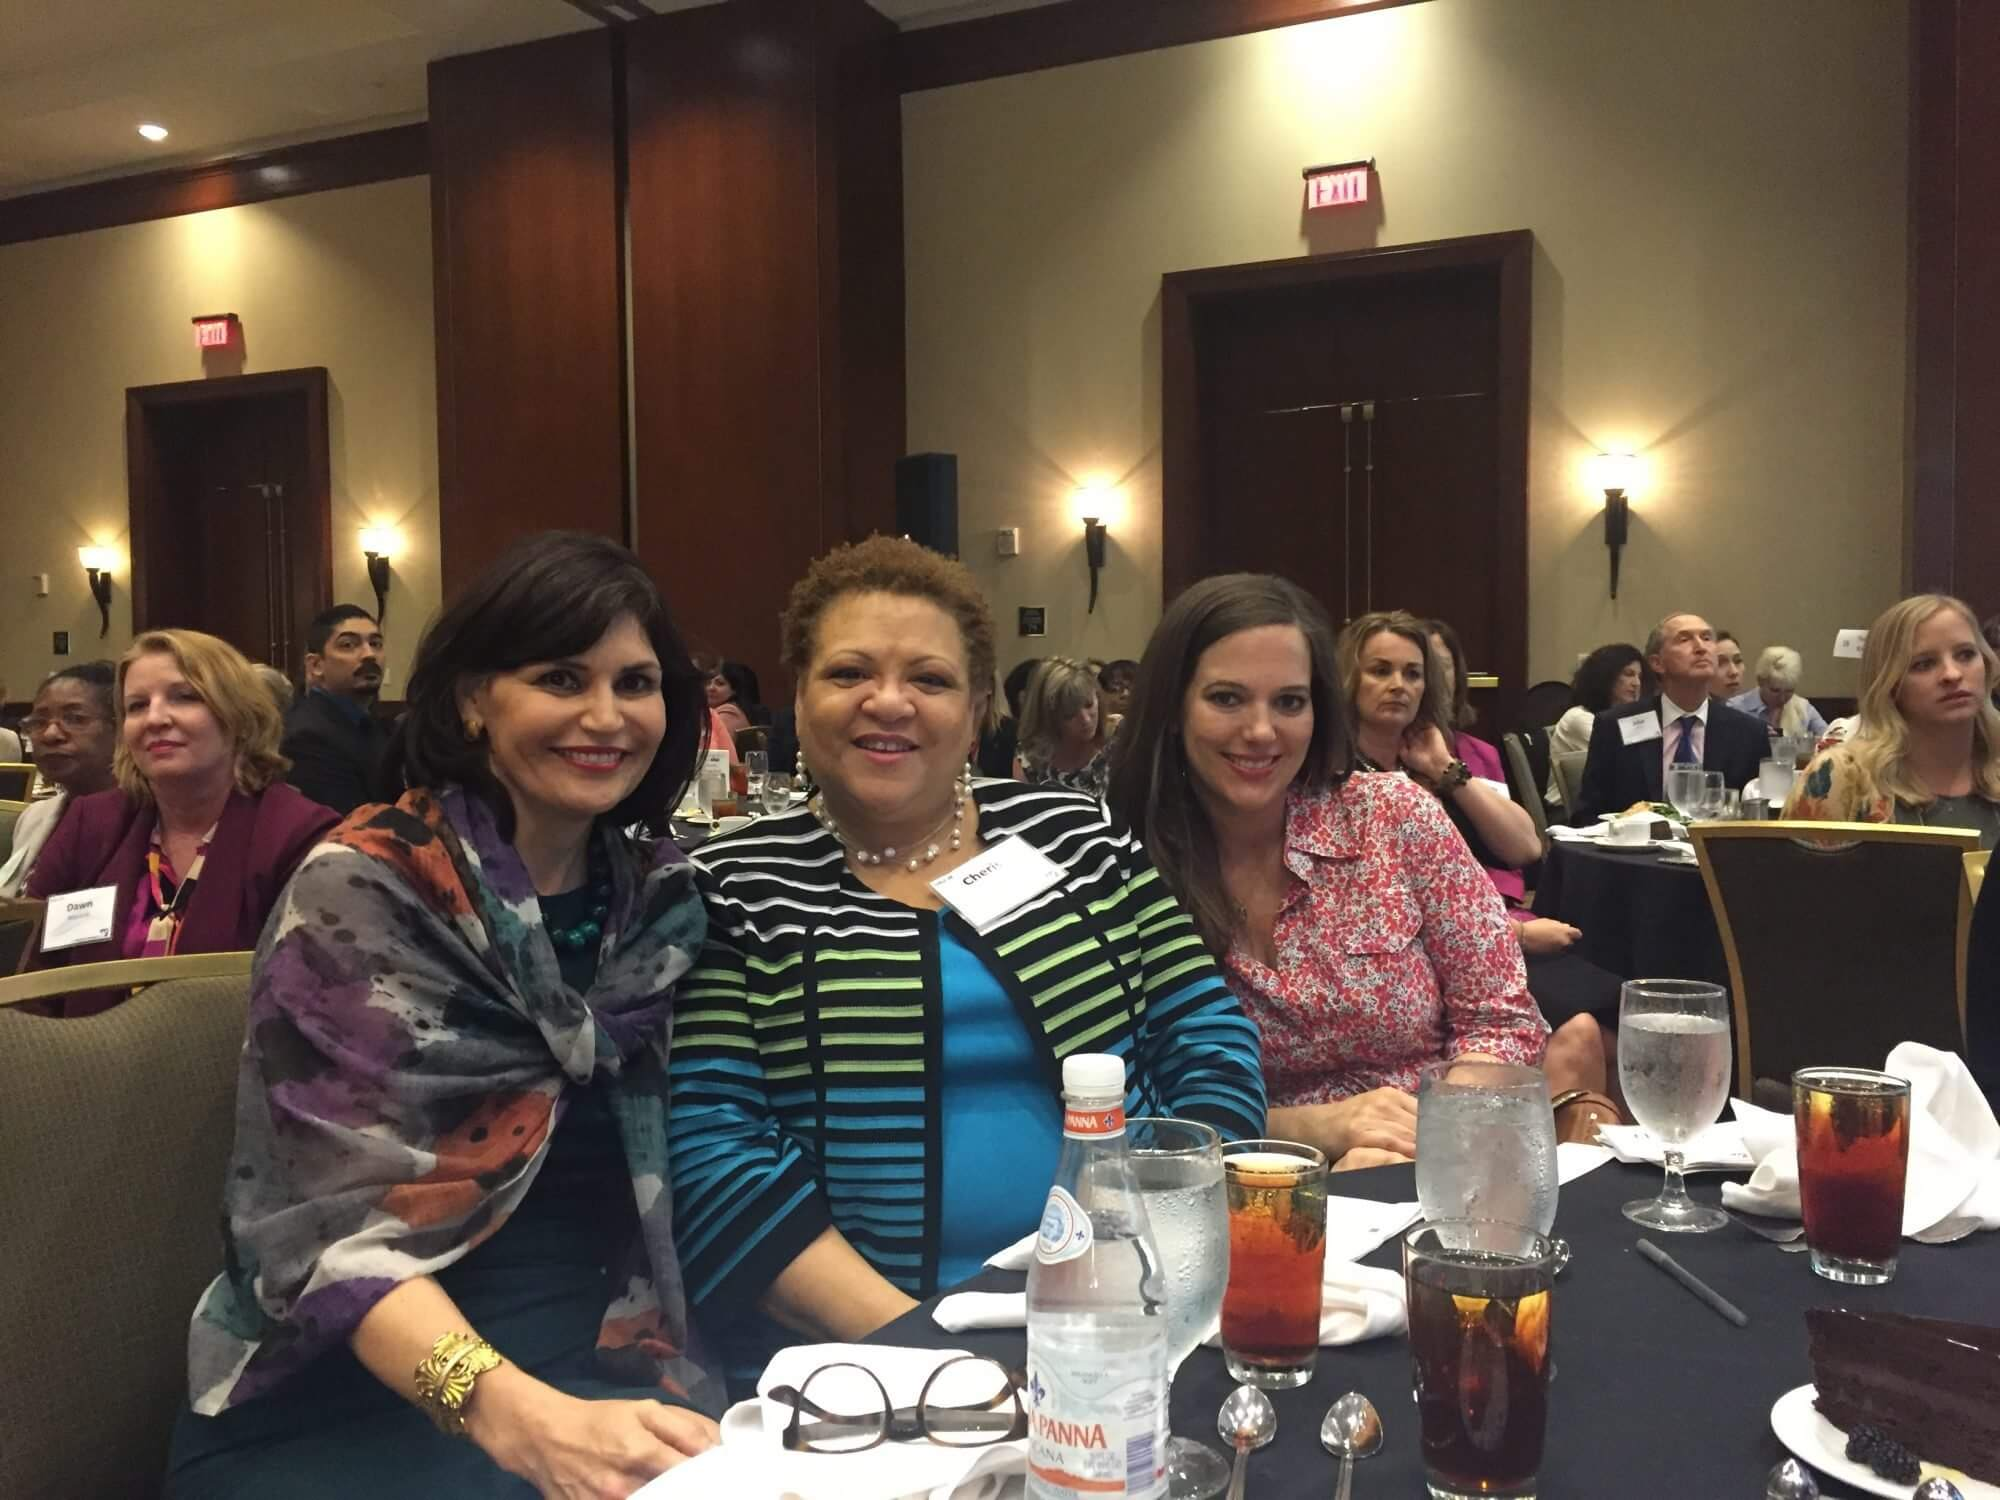 Denise Castillo-Rhodes, Chief Financial Officer of the Texas Medical Center, Cherise Story, Senior Internal Auditor at the Texas Medical Center, and Christen David, Vice President of Communications at the Texas Medical Center.